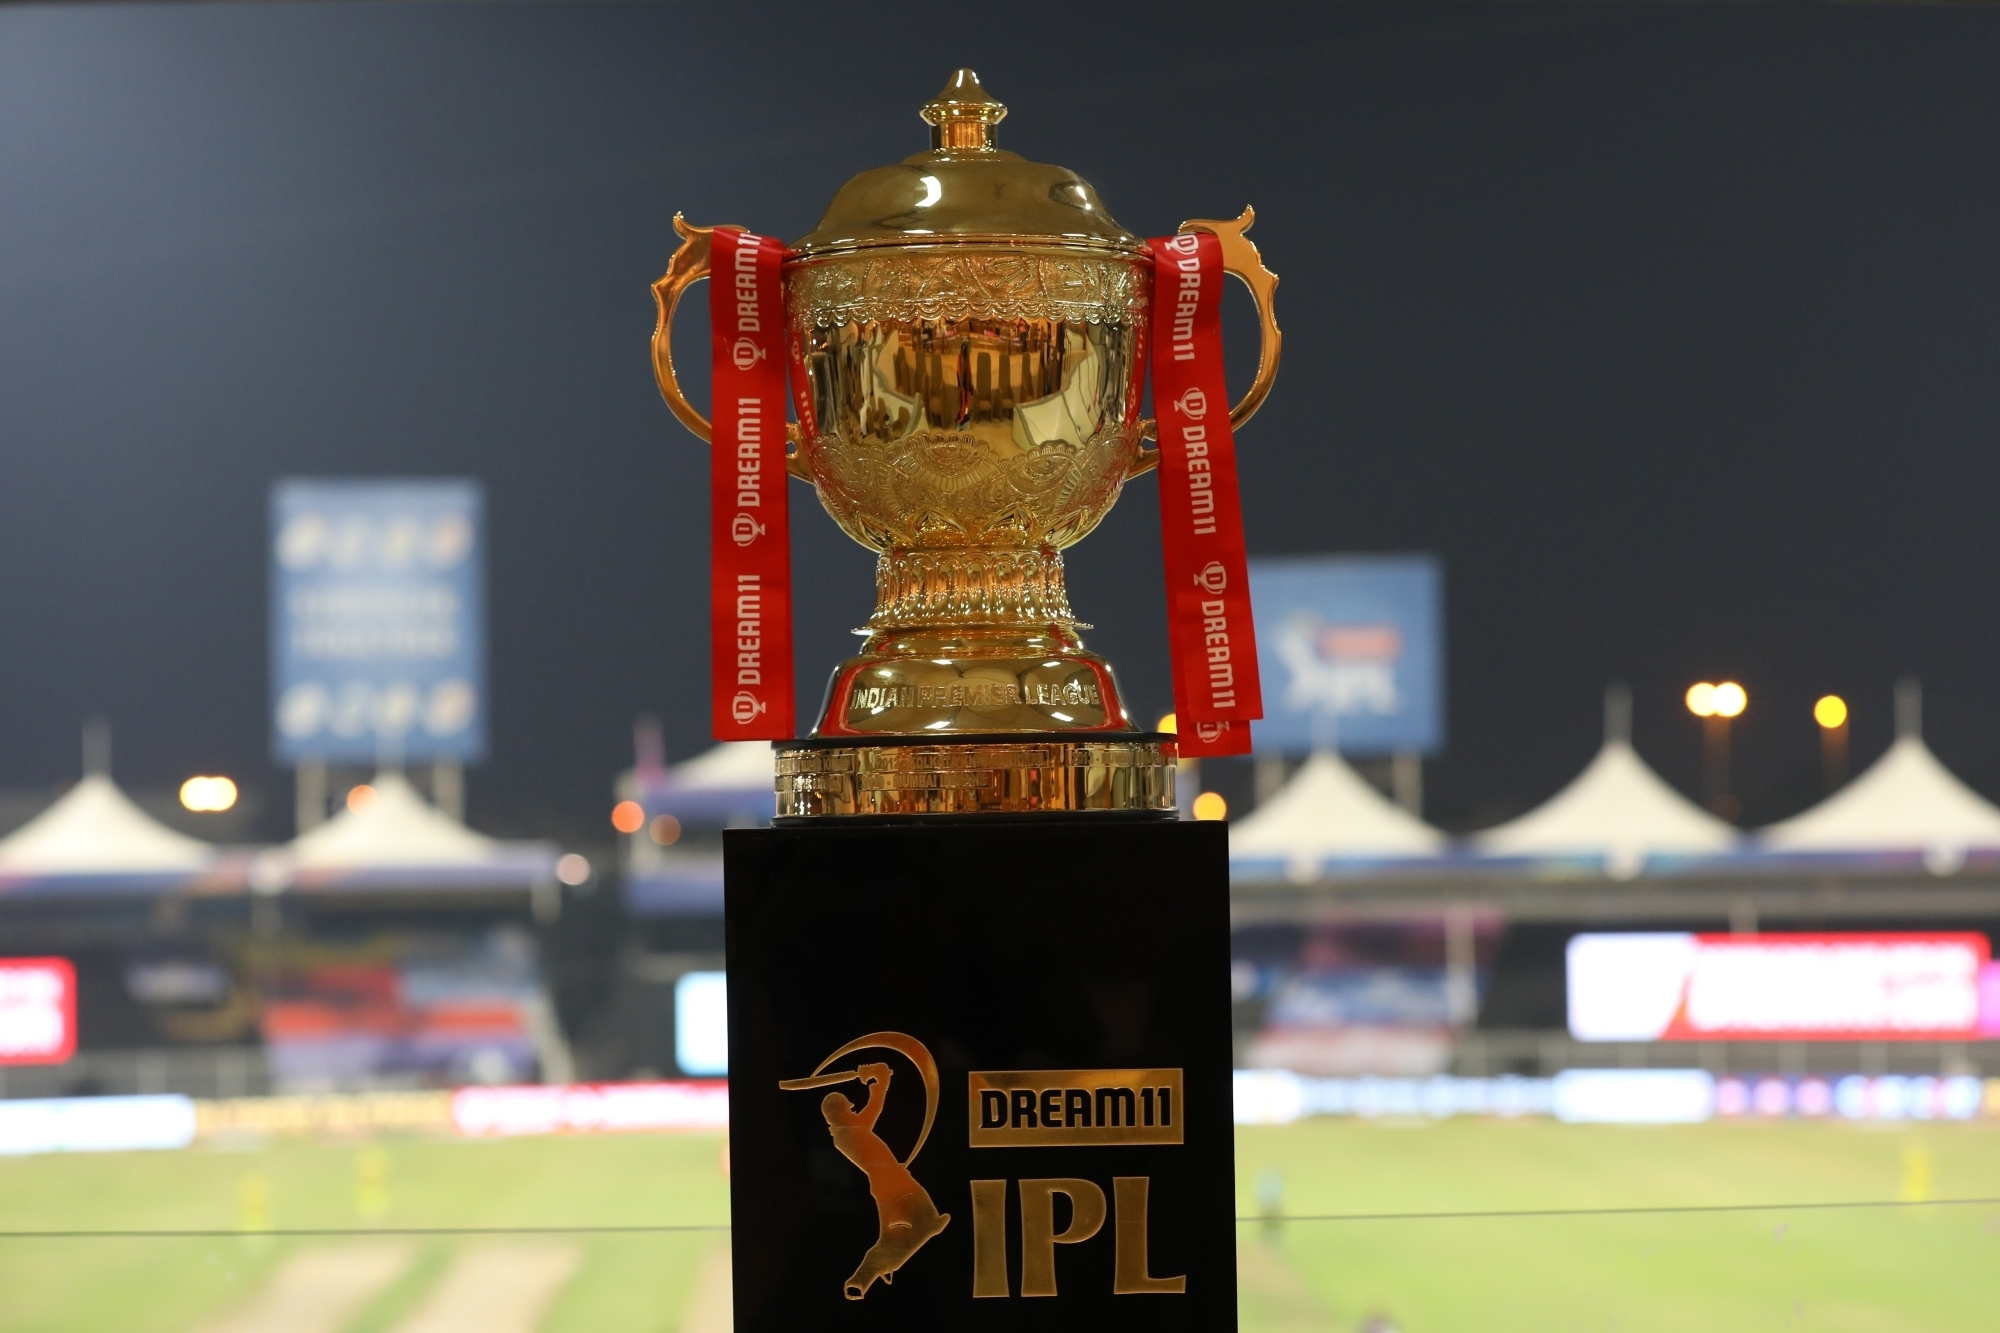 The IPL 2021 auction is reportedly taking place in February